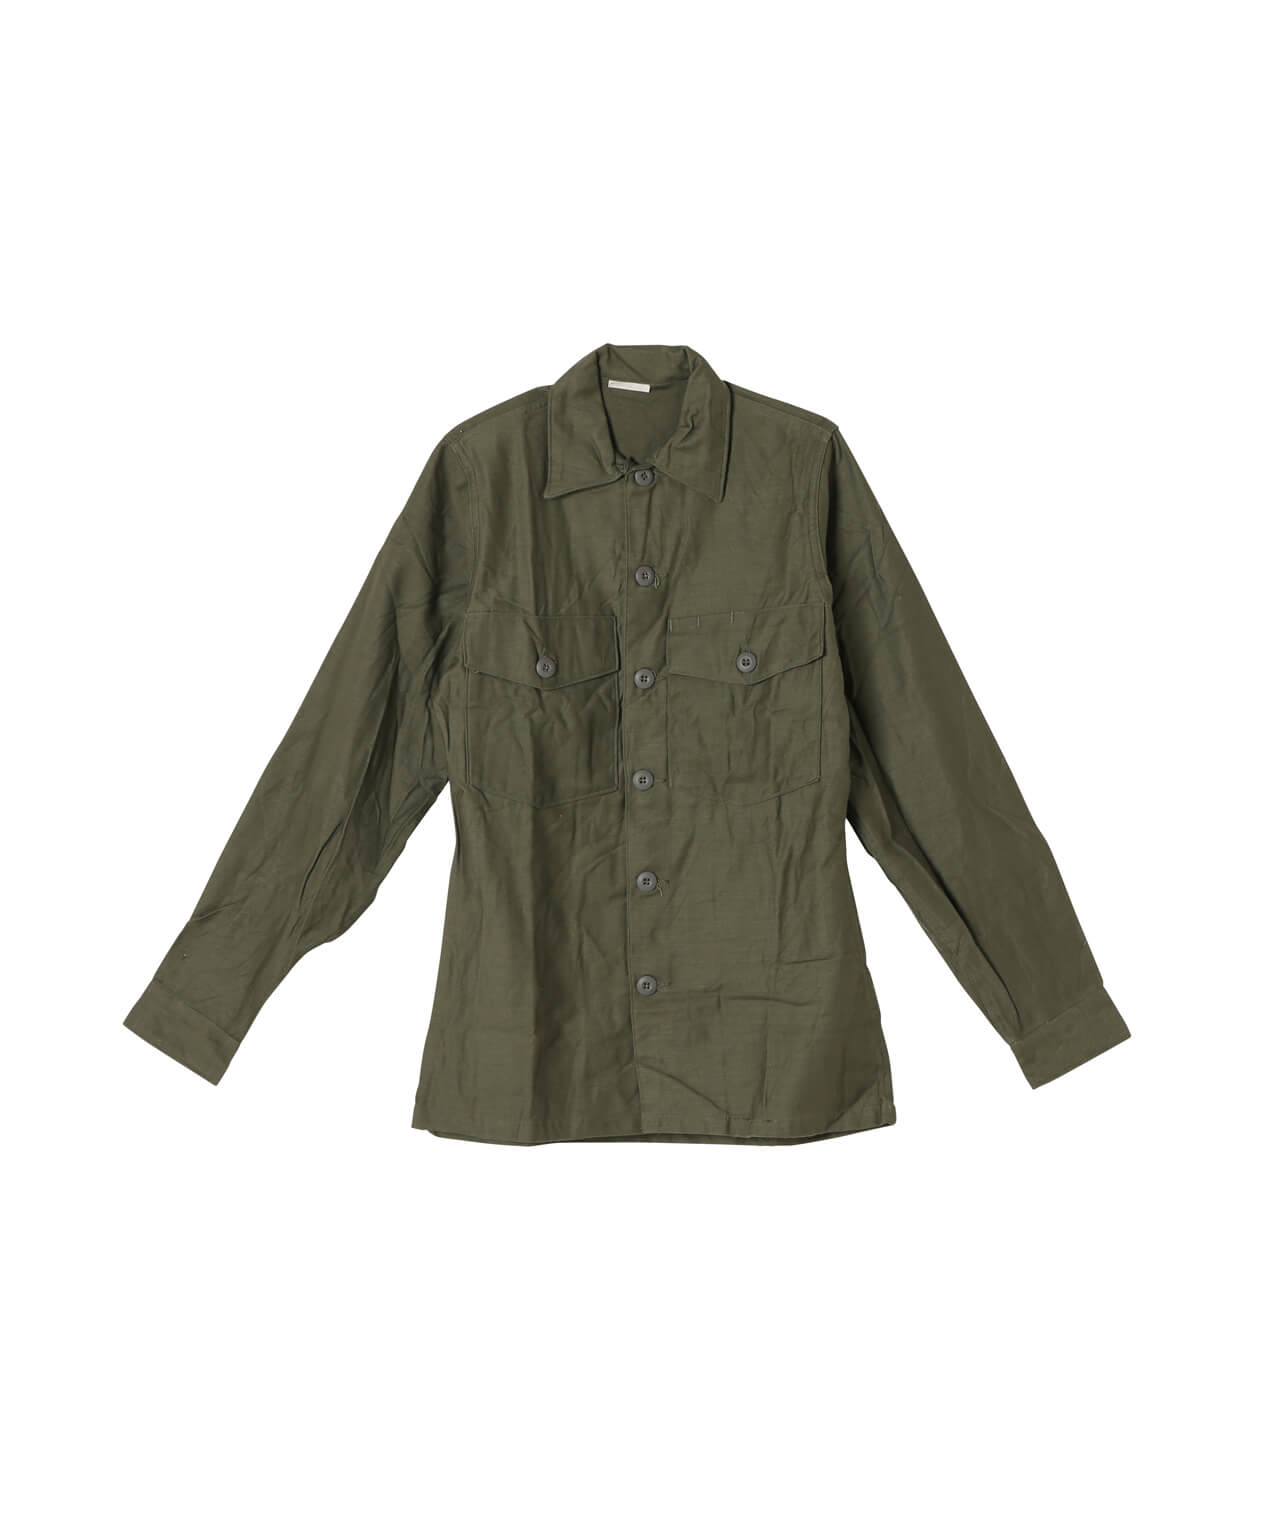 USED/US MILITARY W's COTTON SATEN UTILITY SHIRT DEAD STOCK 詳細画像 OLIVE 1